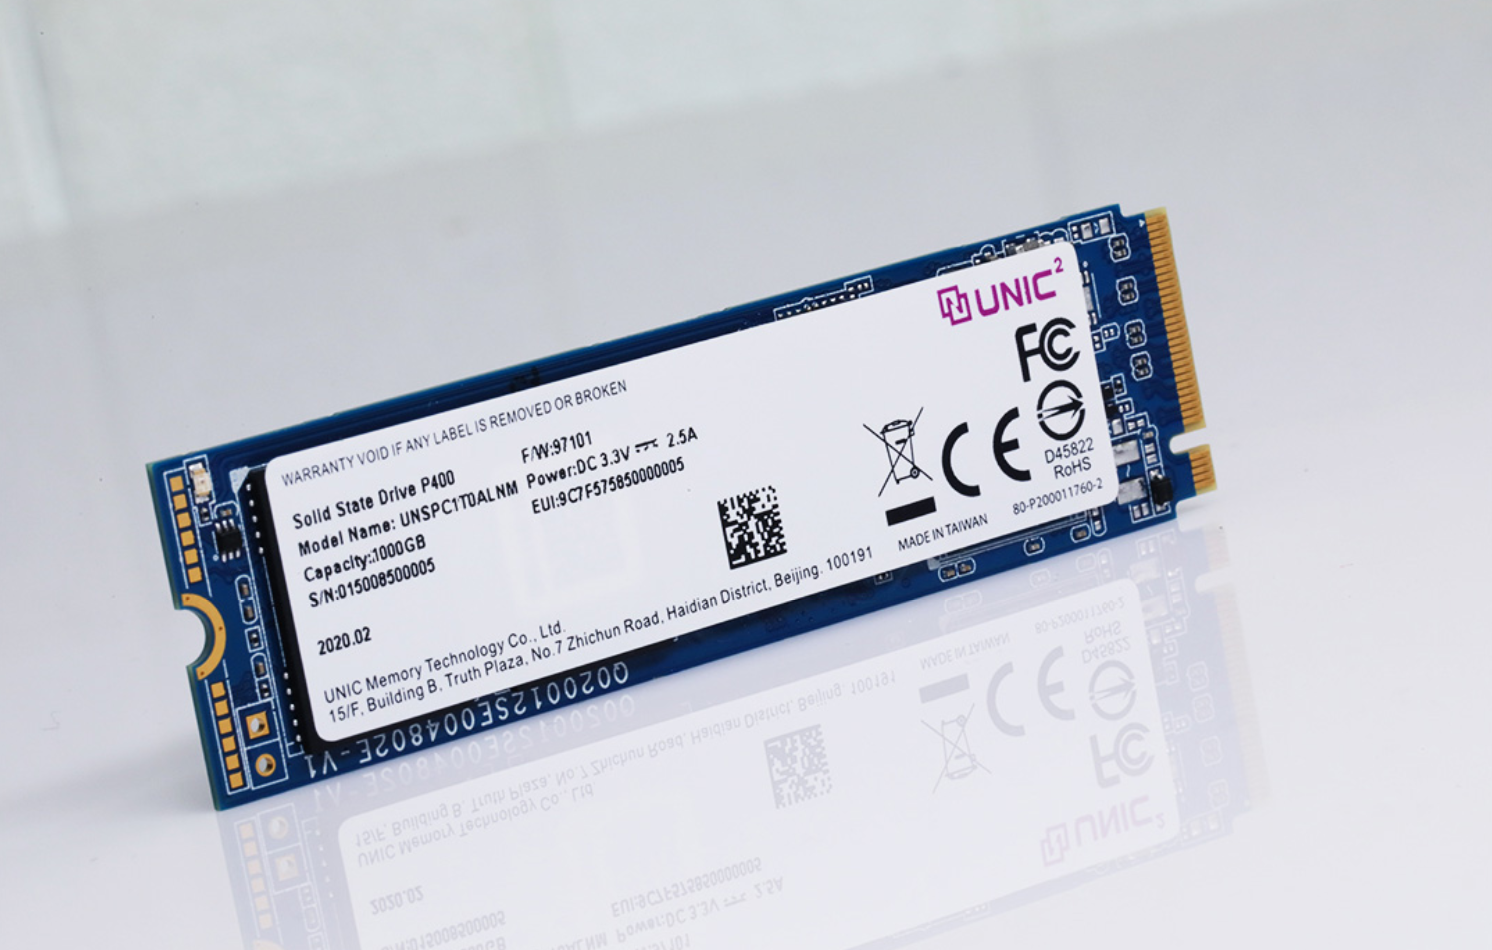 Chinese firm launches PCIe 4.0 SSD with up to 4.5GB/s read speed-cnTechPost